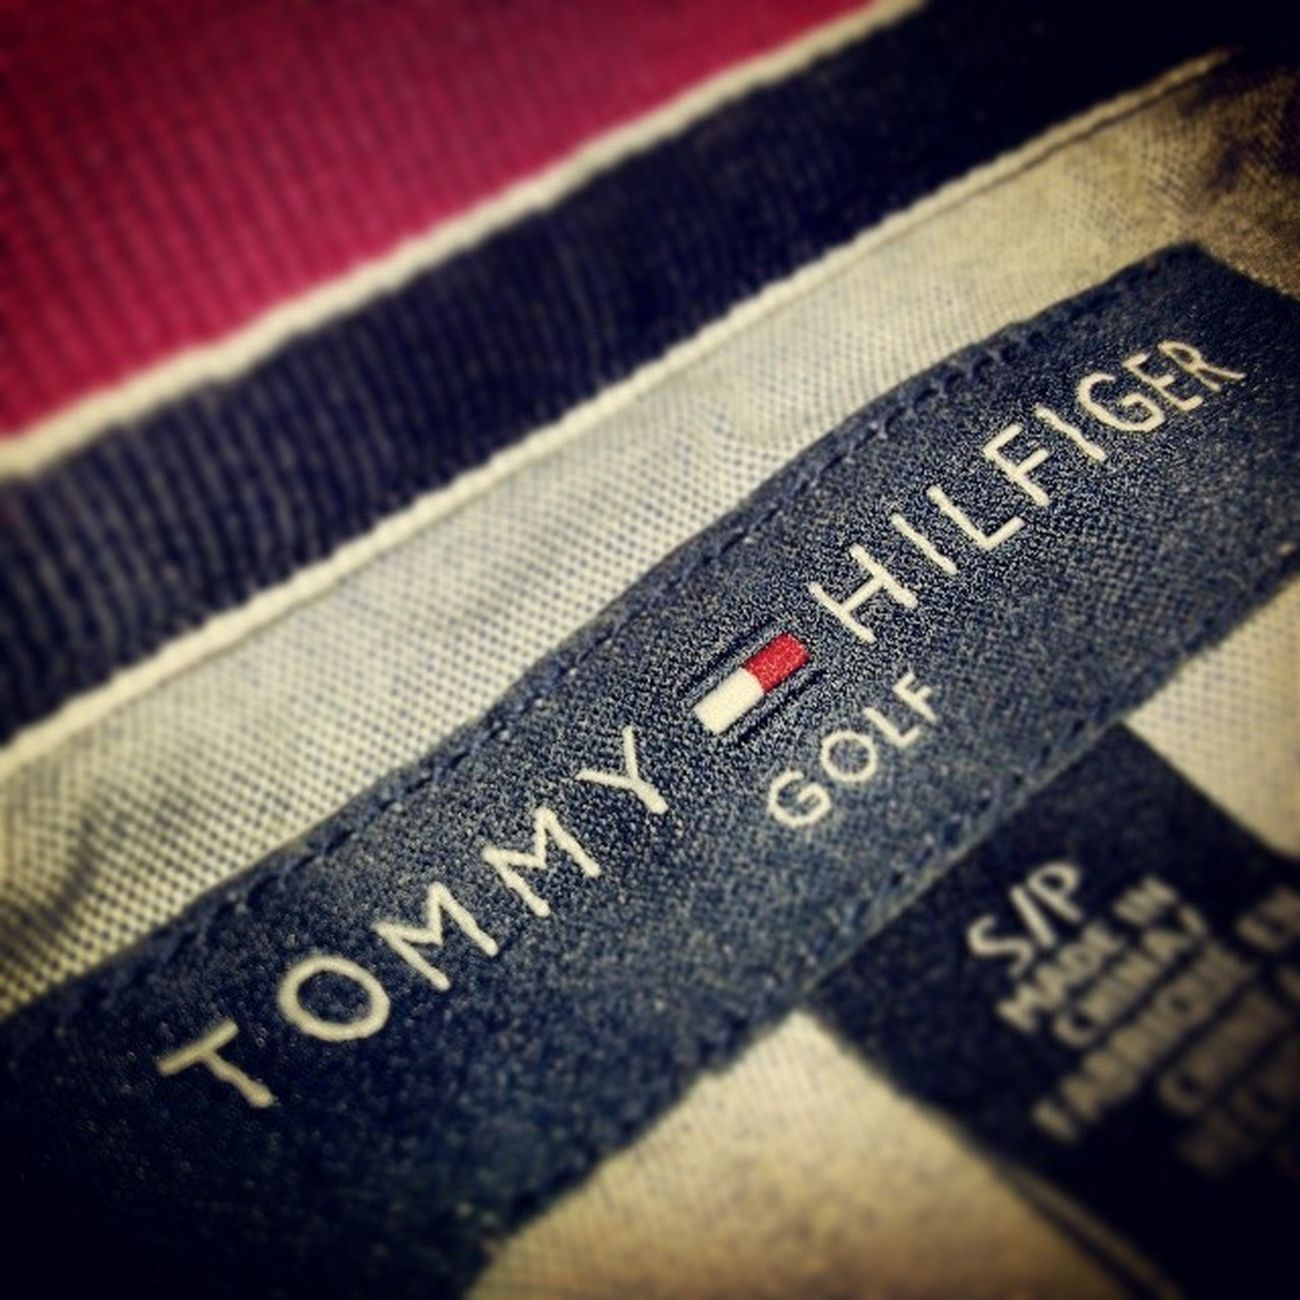 TommyHilfigre Mybrand MyFavorite  Polo shirt MYPHOTOGRAPHY mycreativity awesome cool